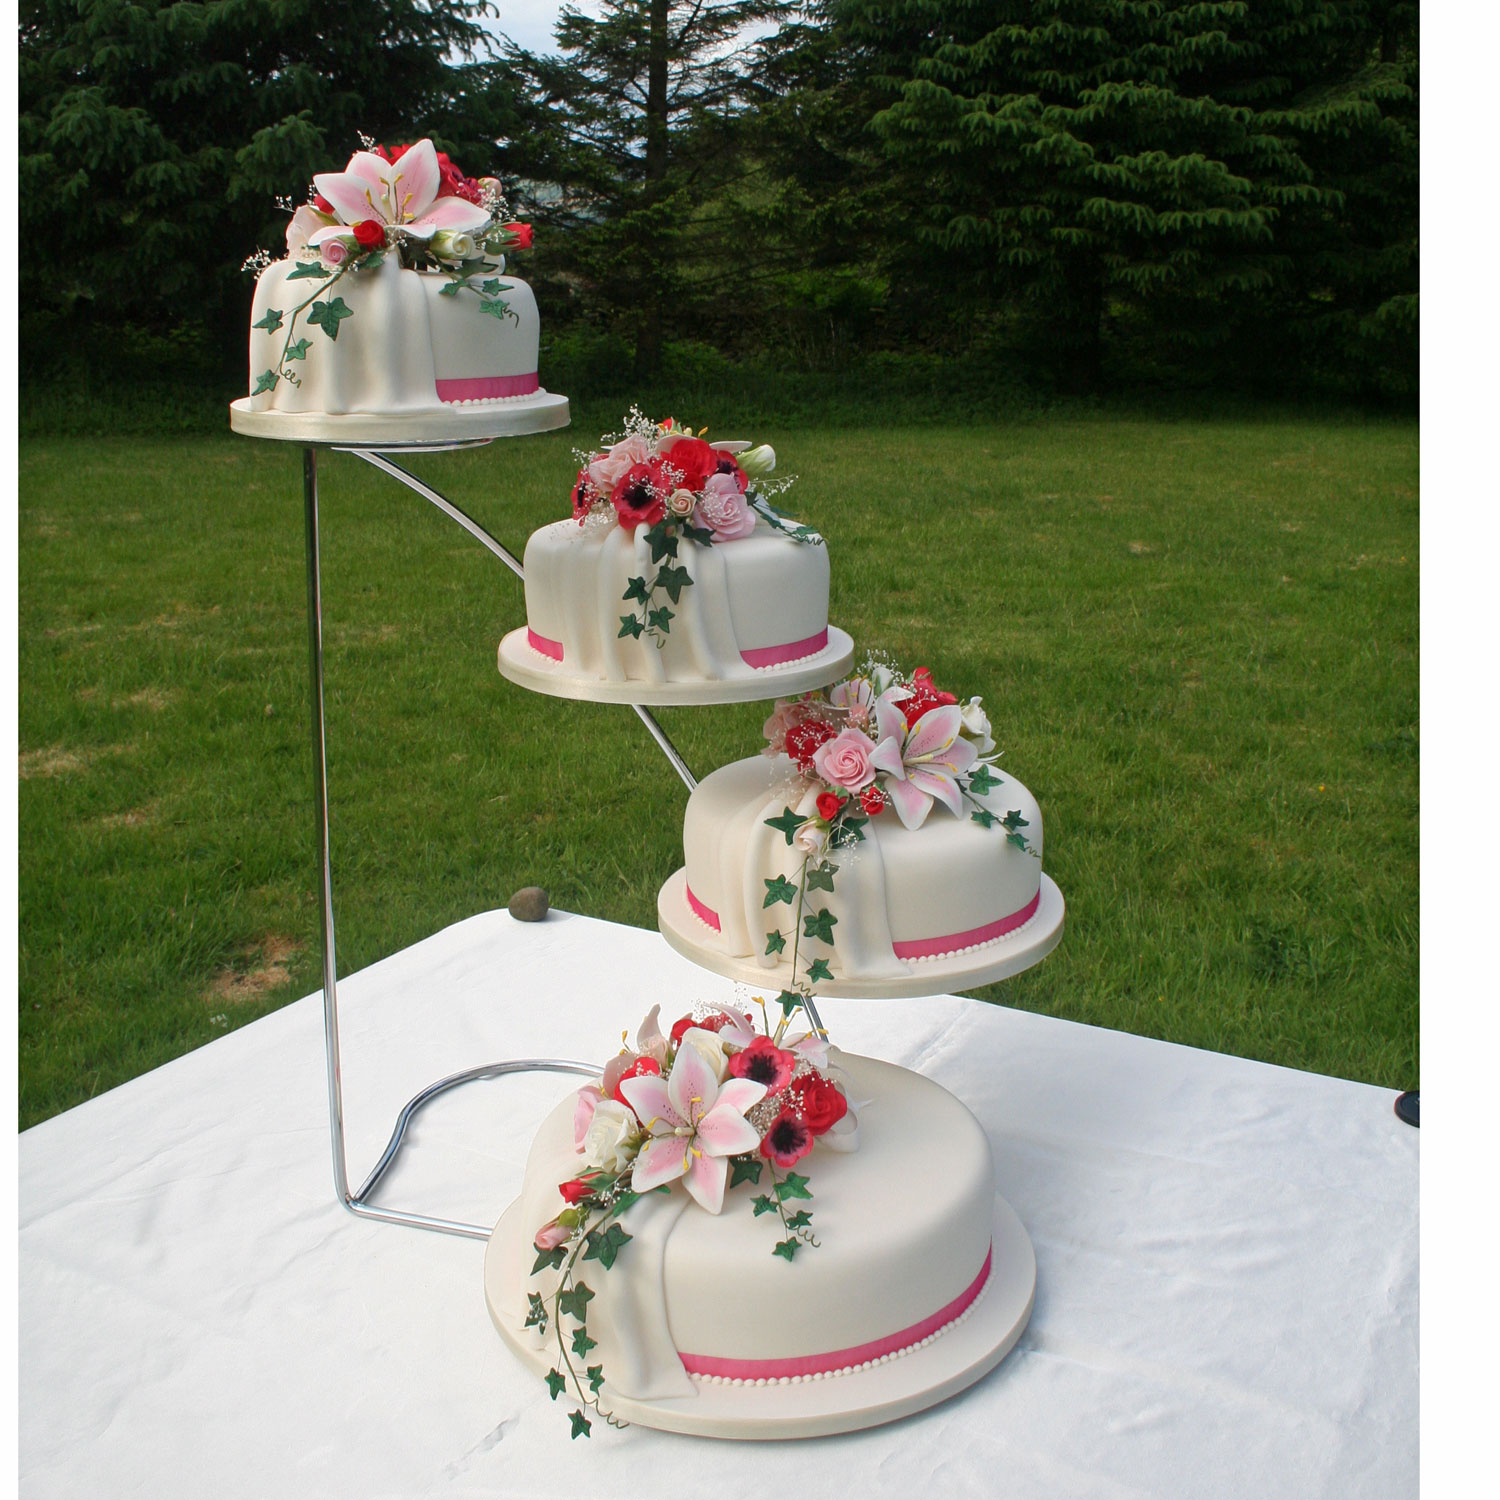 Four Tier Wedding Cake with Icing Drapes